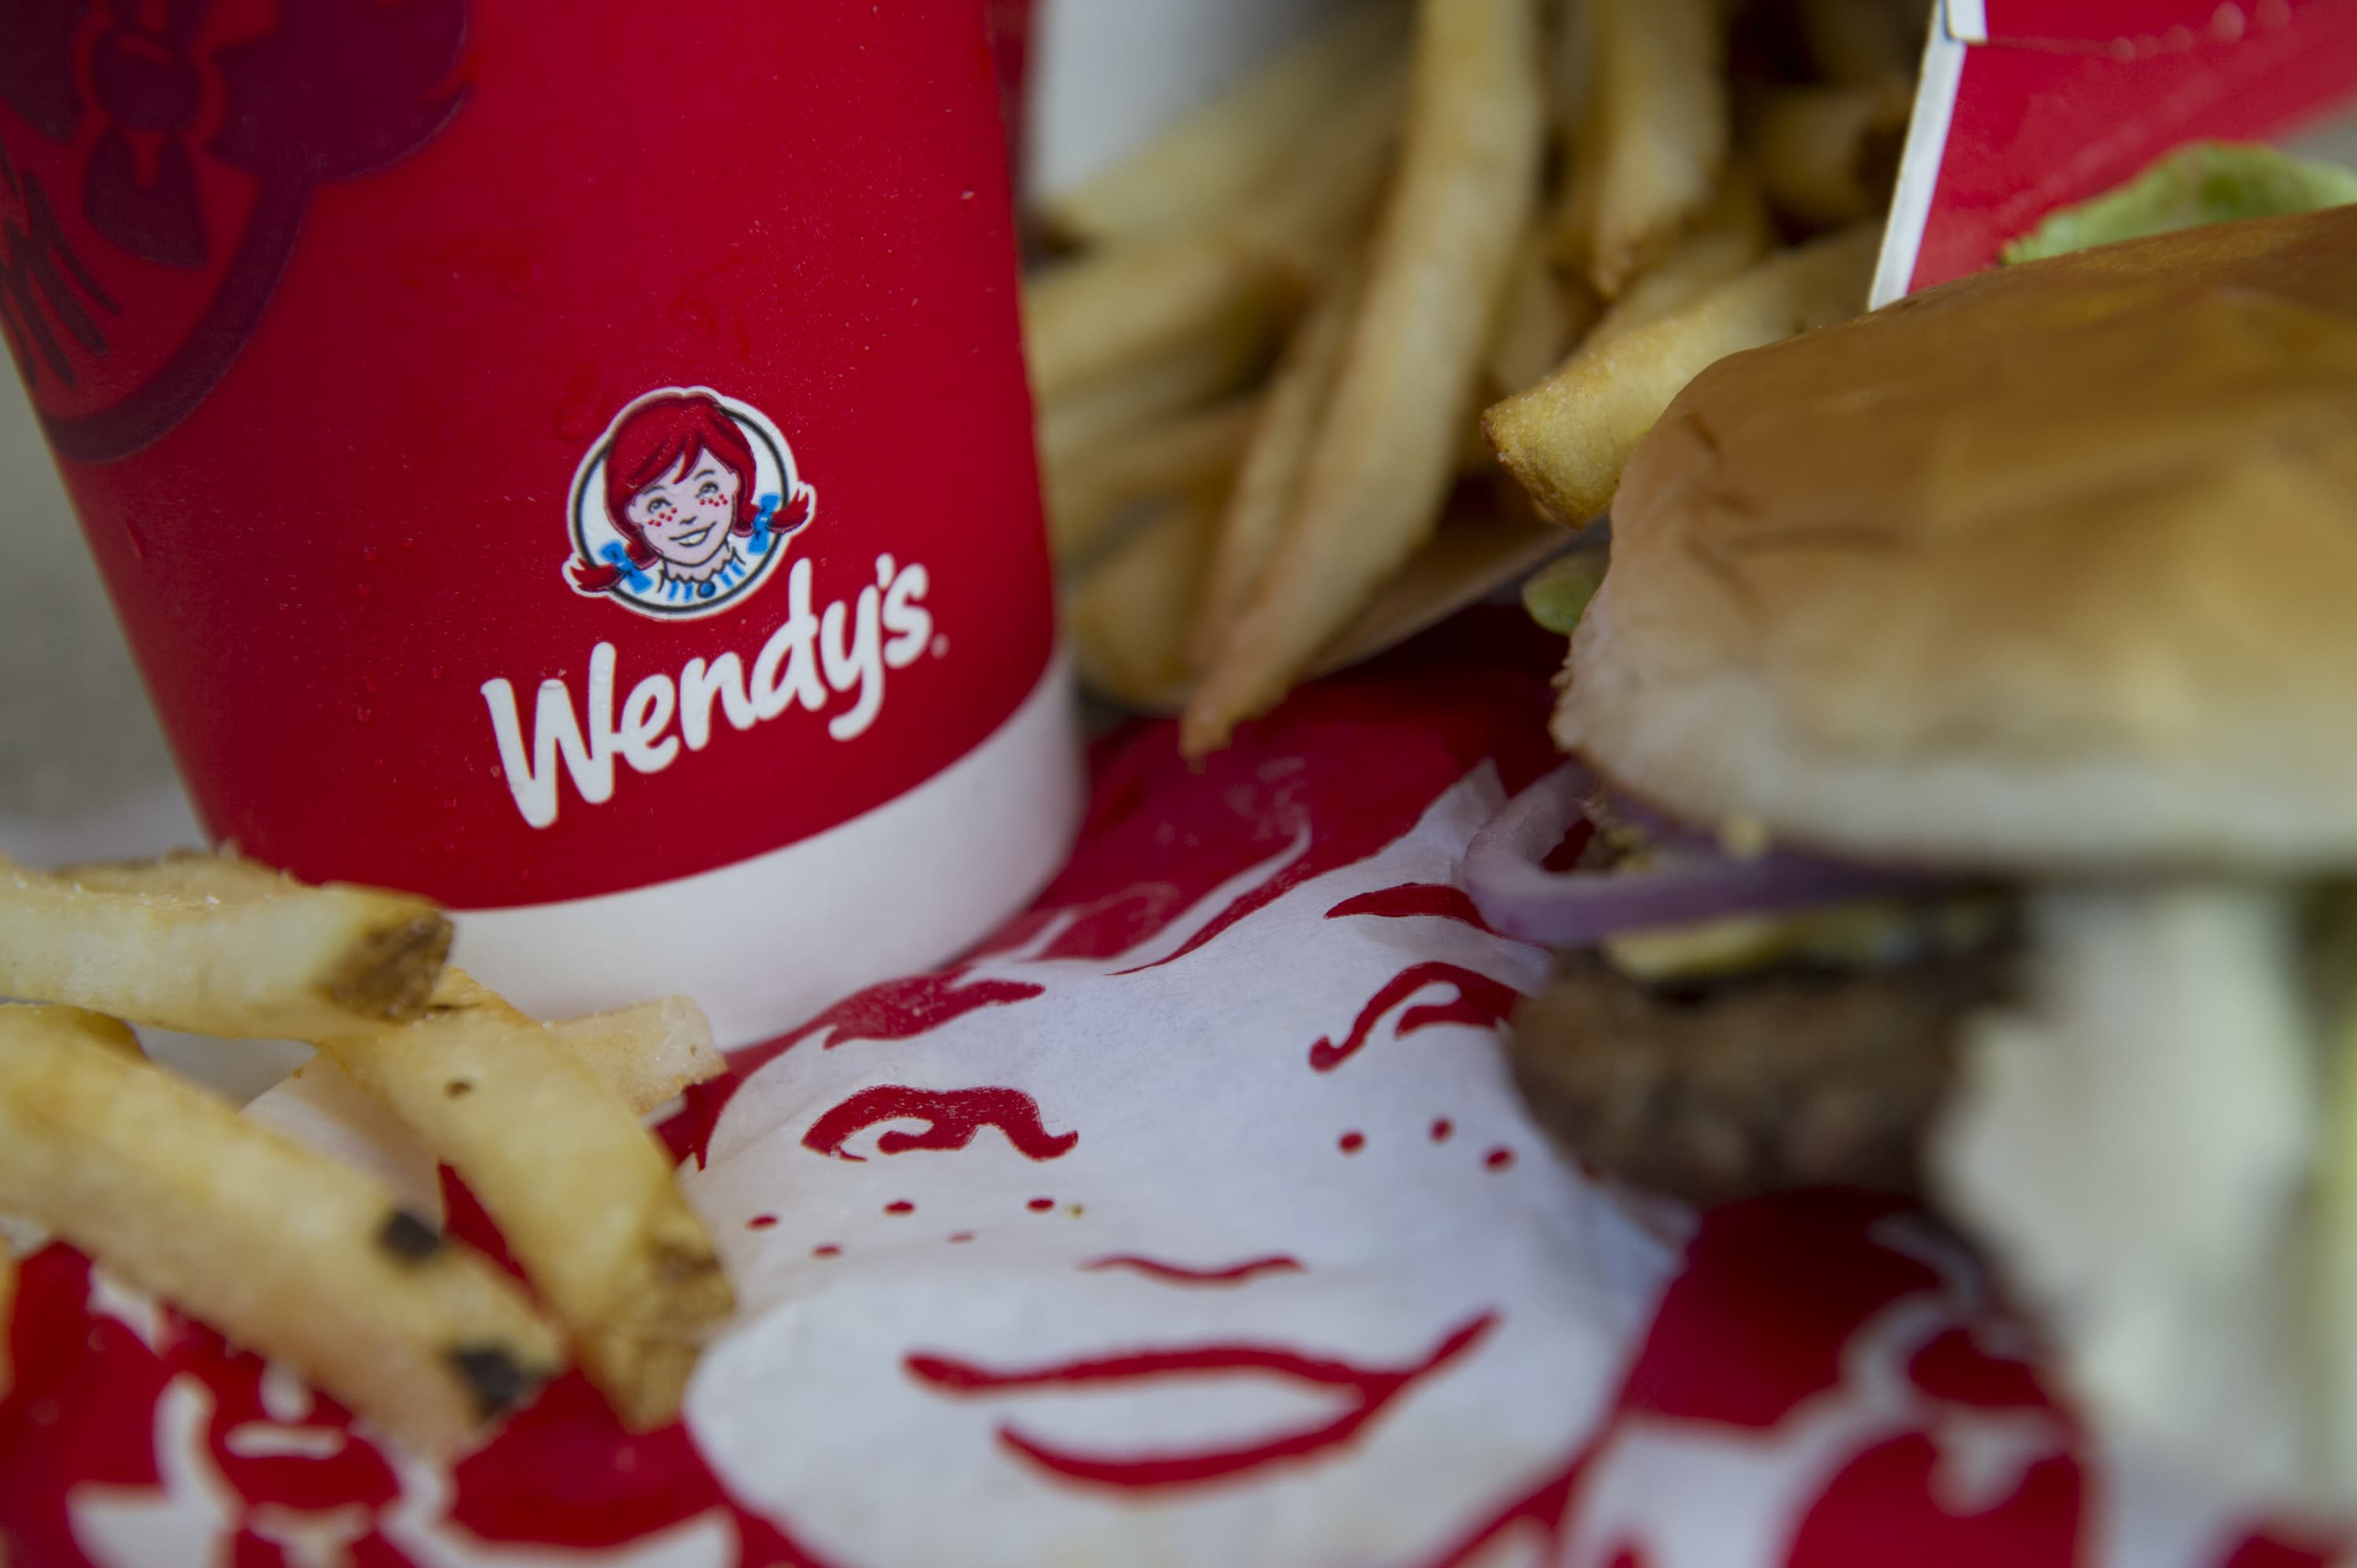 Nearly a fifth of Wendy's US restaurants are out of beef, analyst says